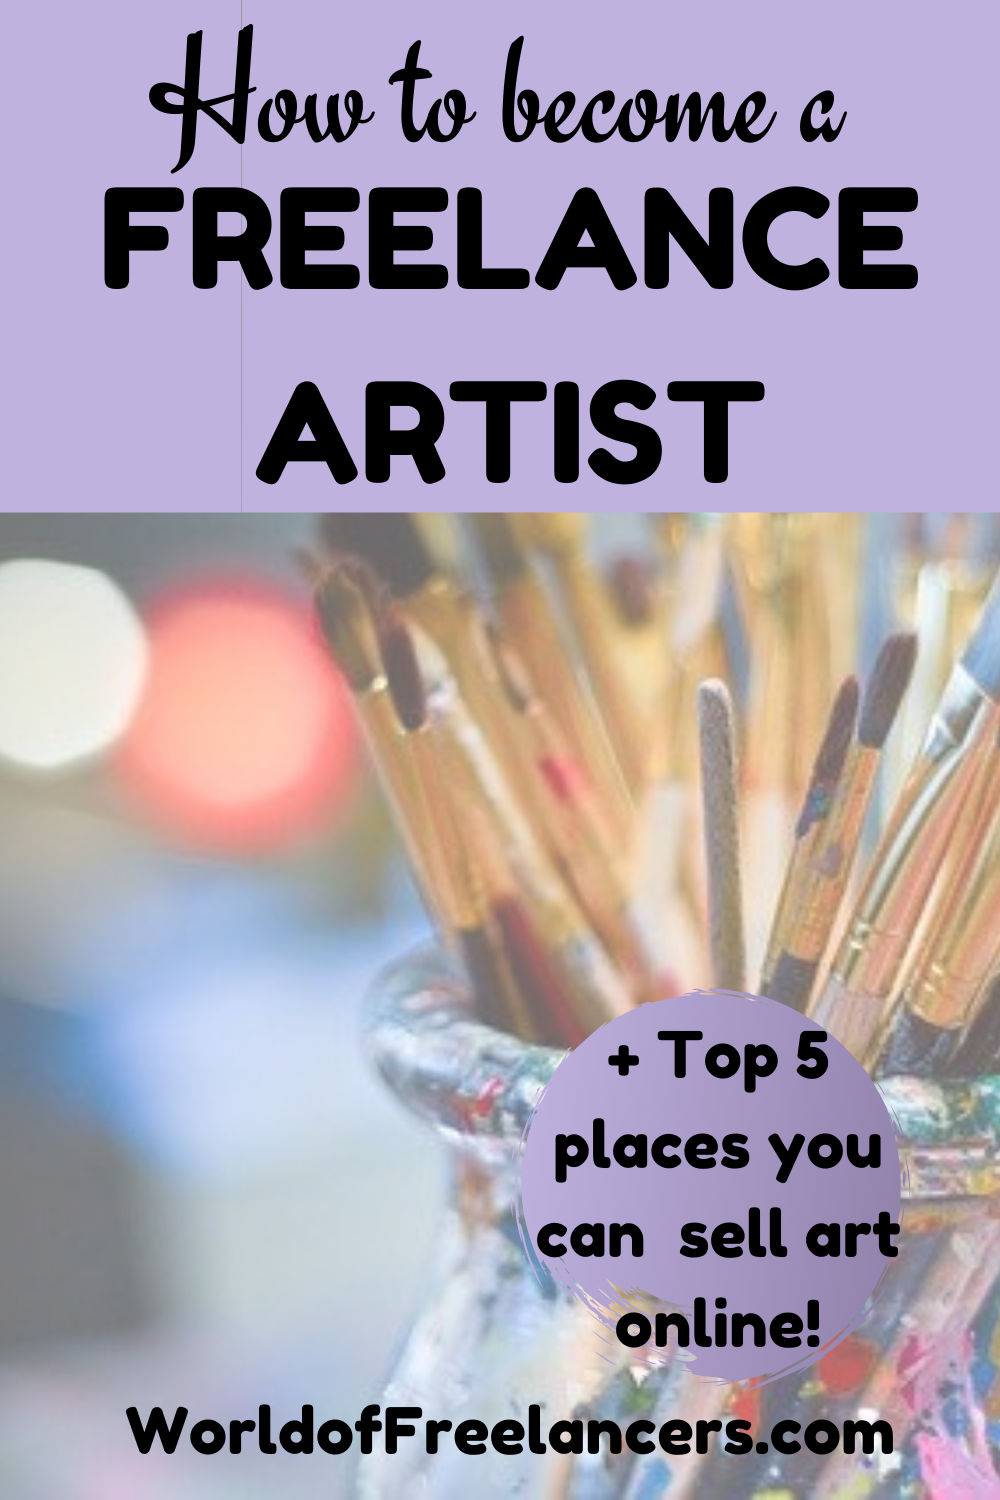 How to become a freelance artist - plus the top 5 places you can sell art online